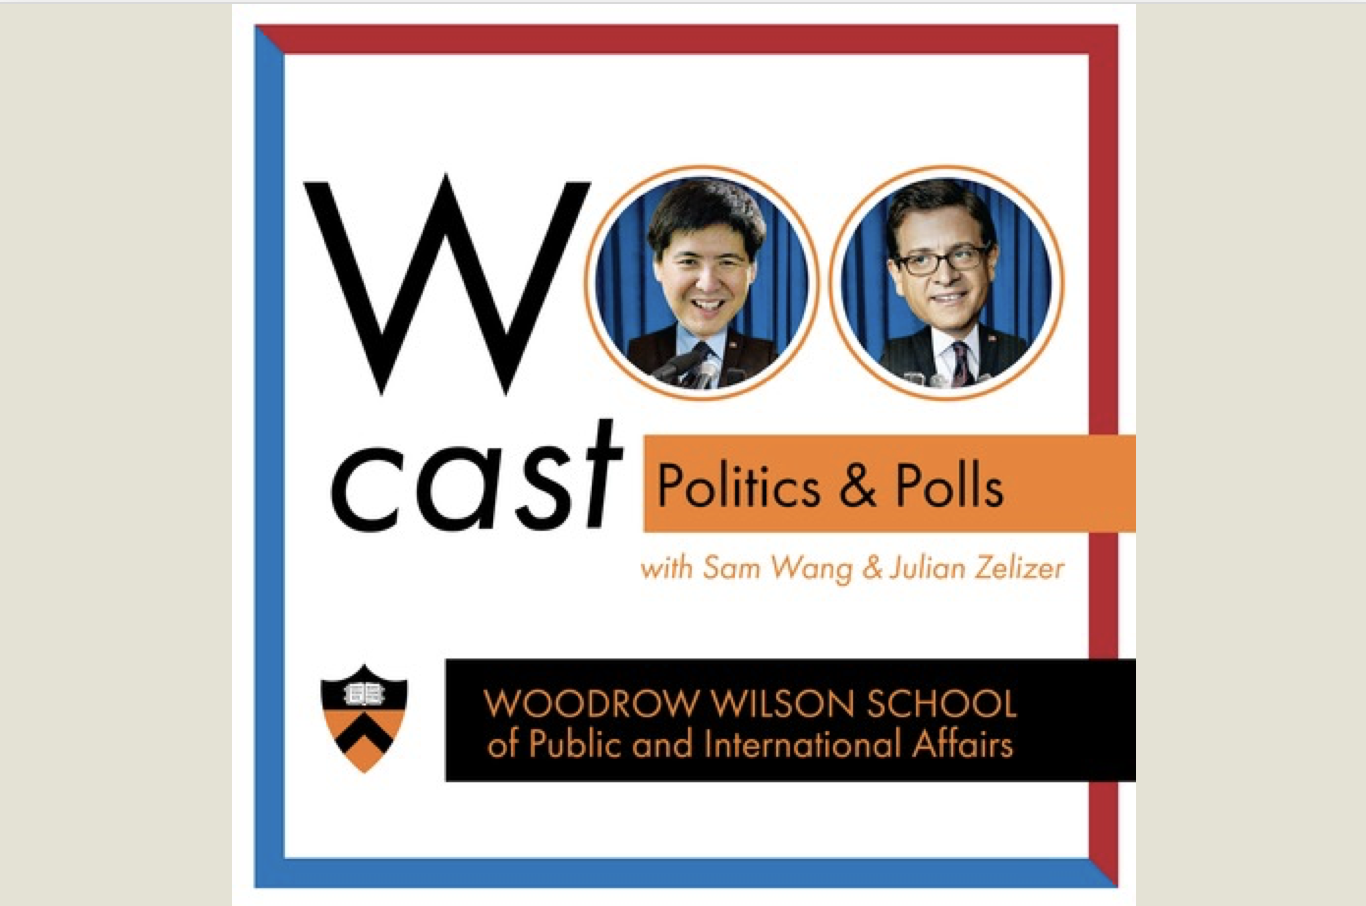 Woocast: Politics & Polls with Sam Wang & Julian Zelizer